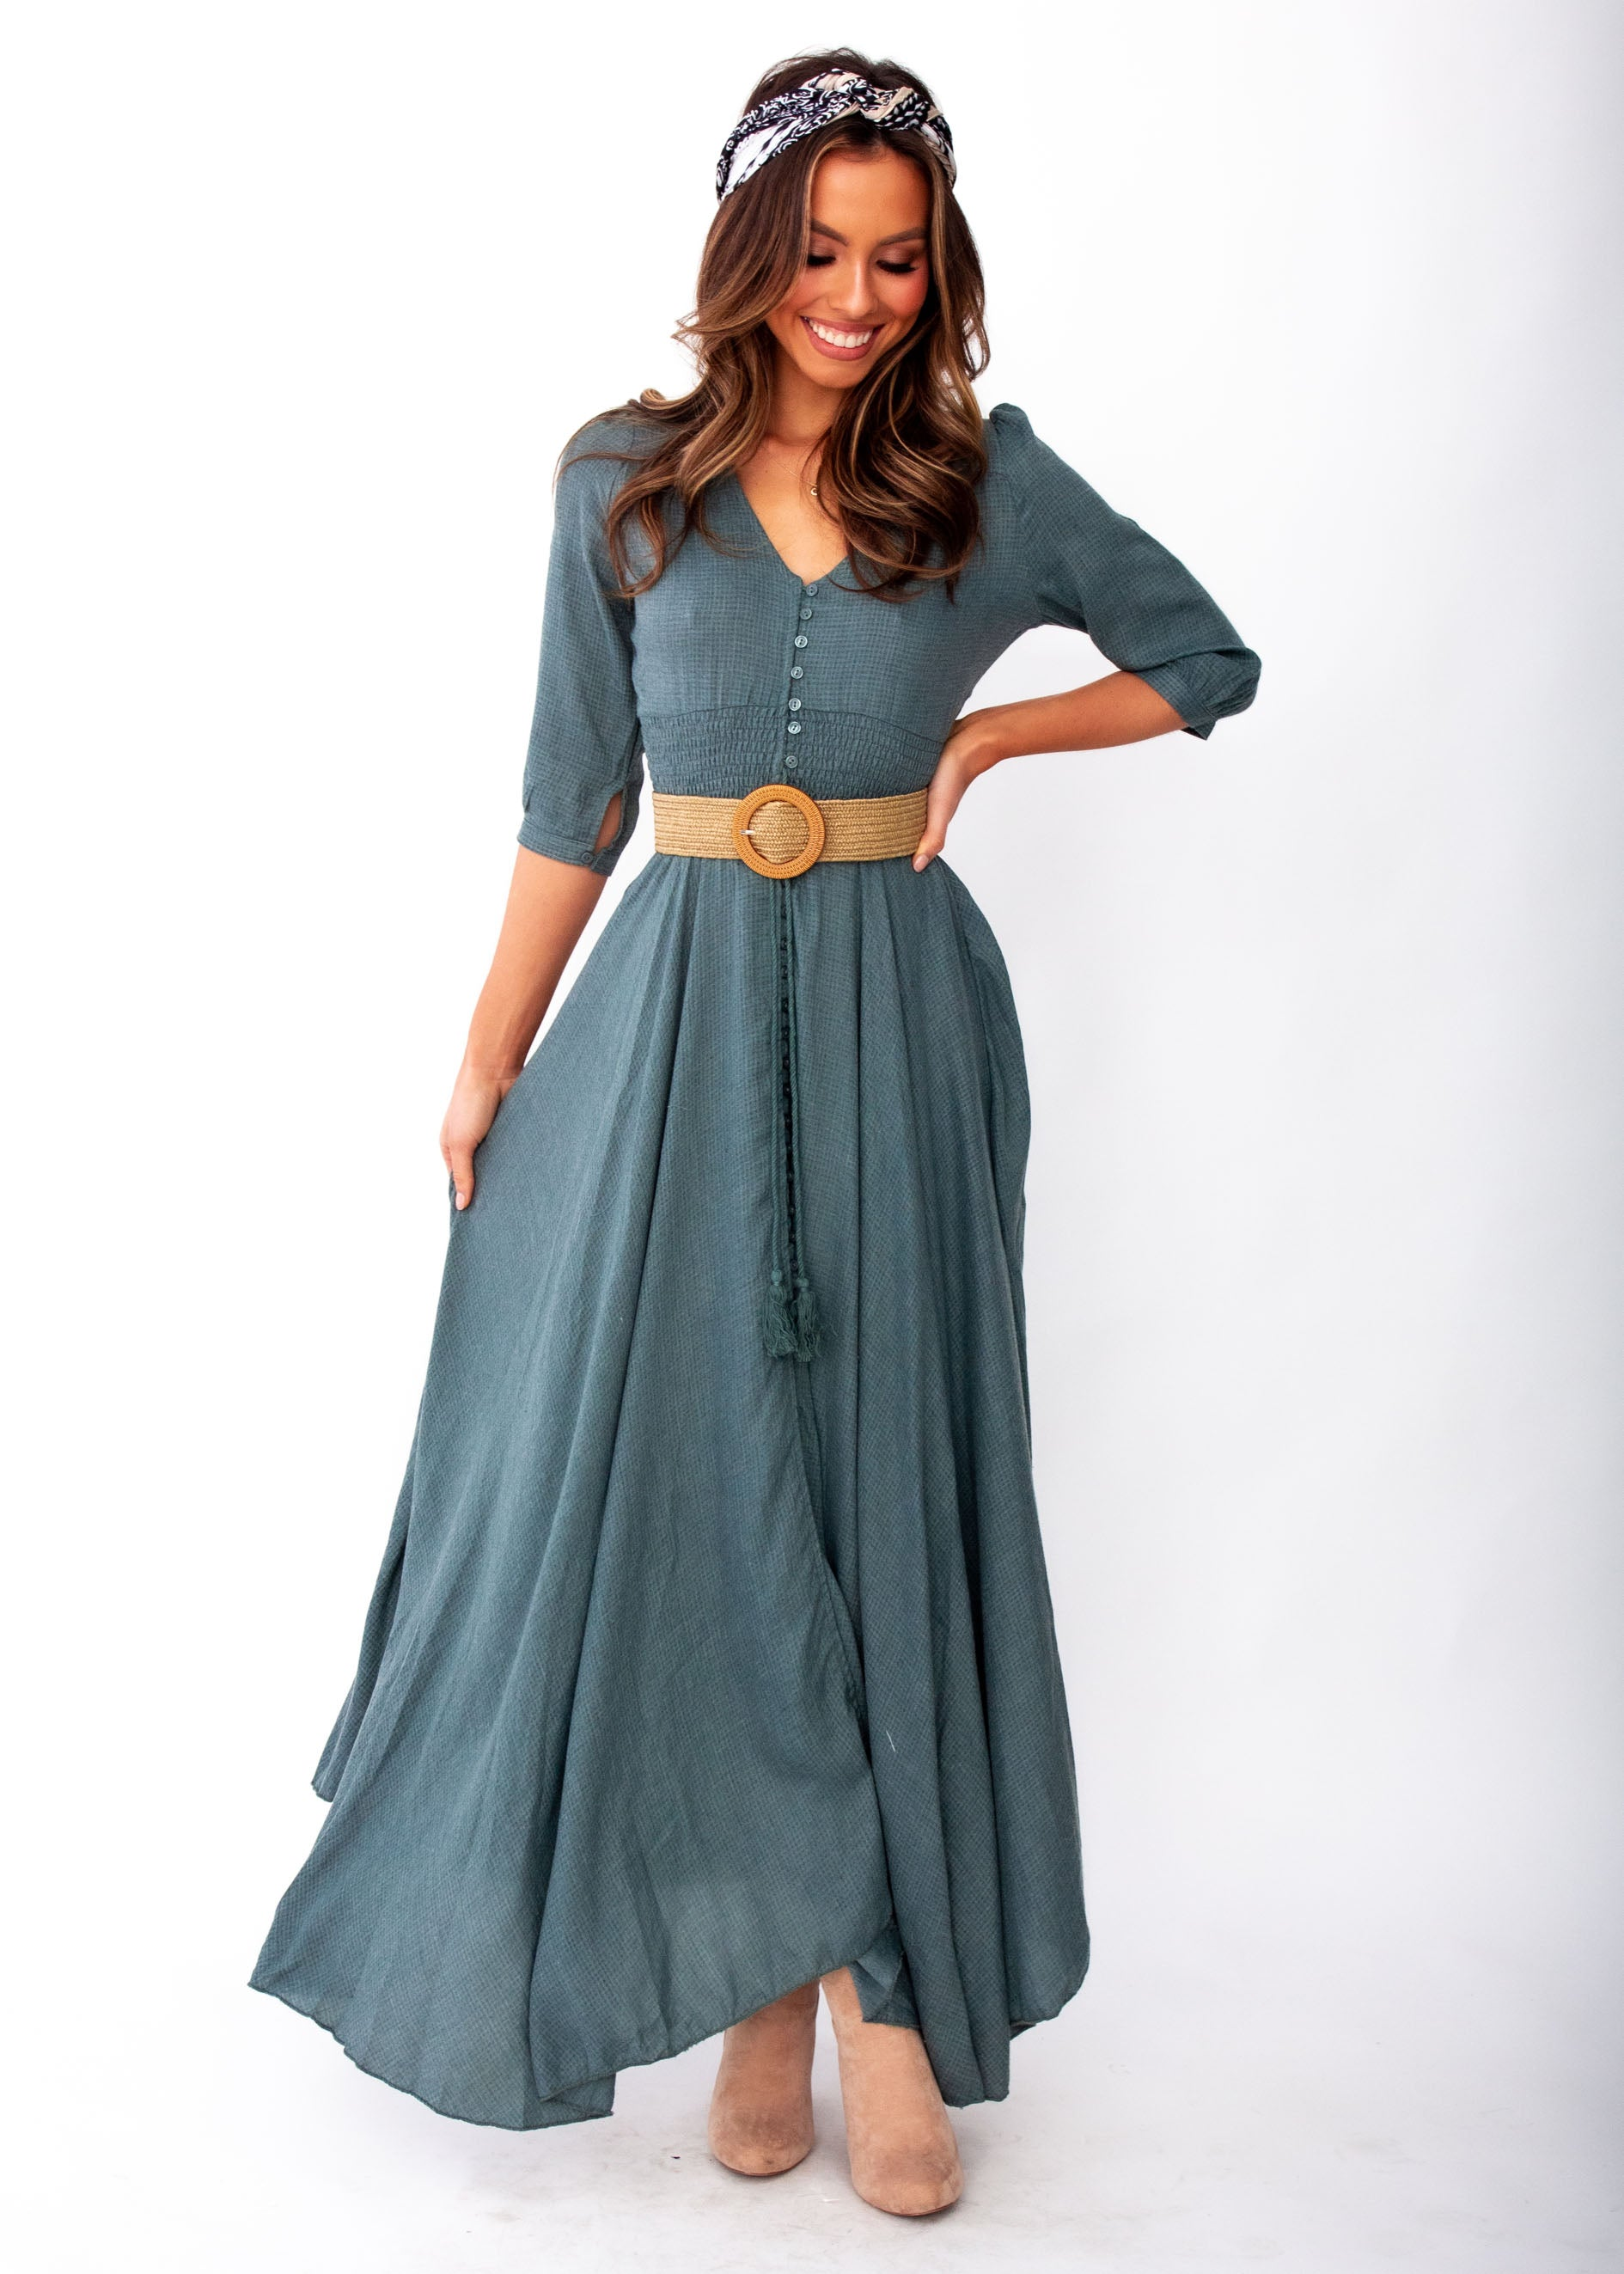 63a8ec2c8c2 New Romantics Maxi Dress - Jamais